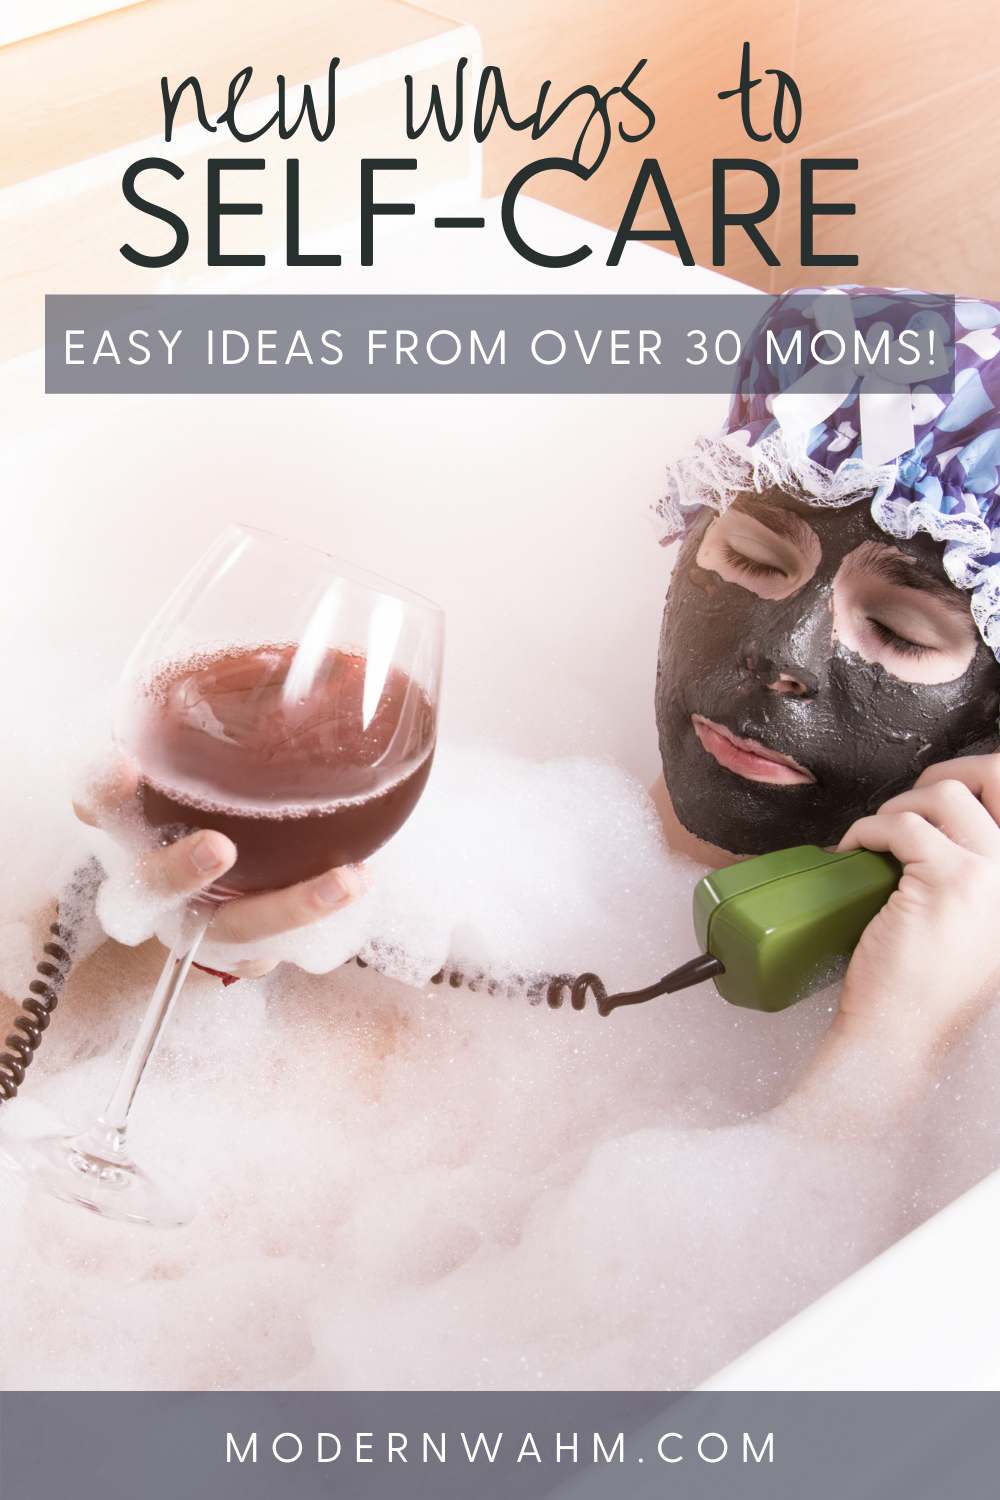 New Self-Care Ideas from 30 Busy Moms